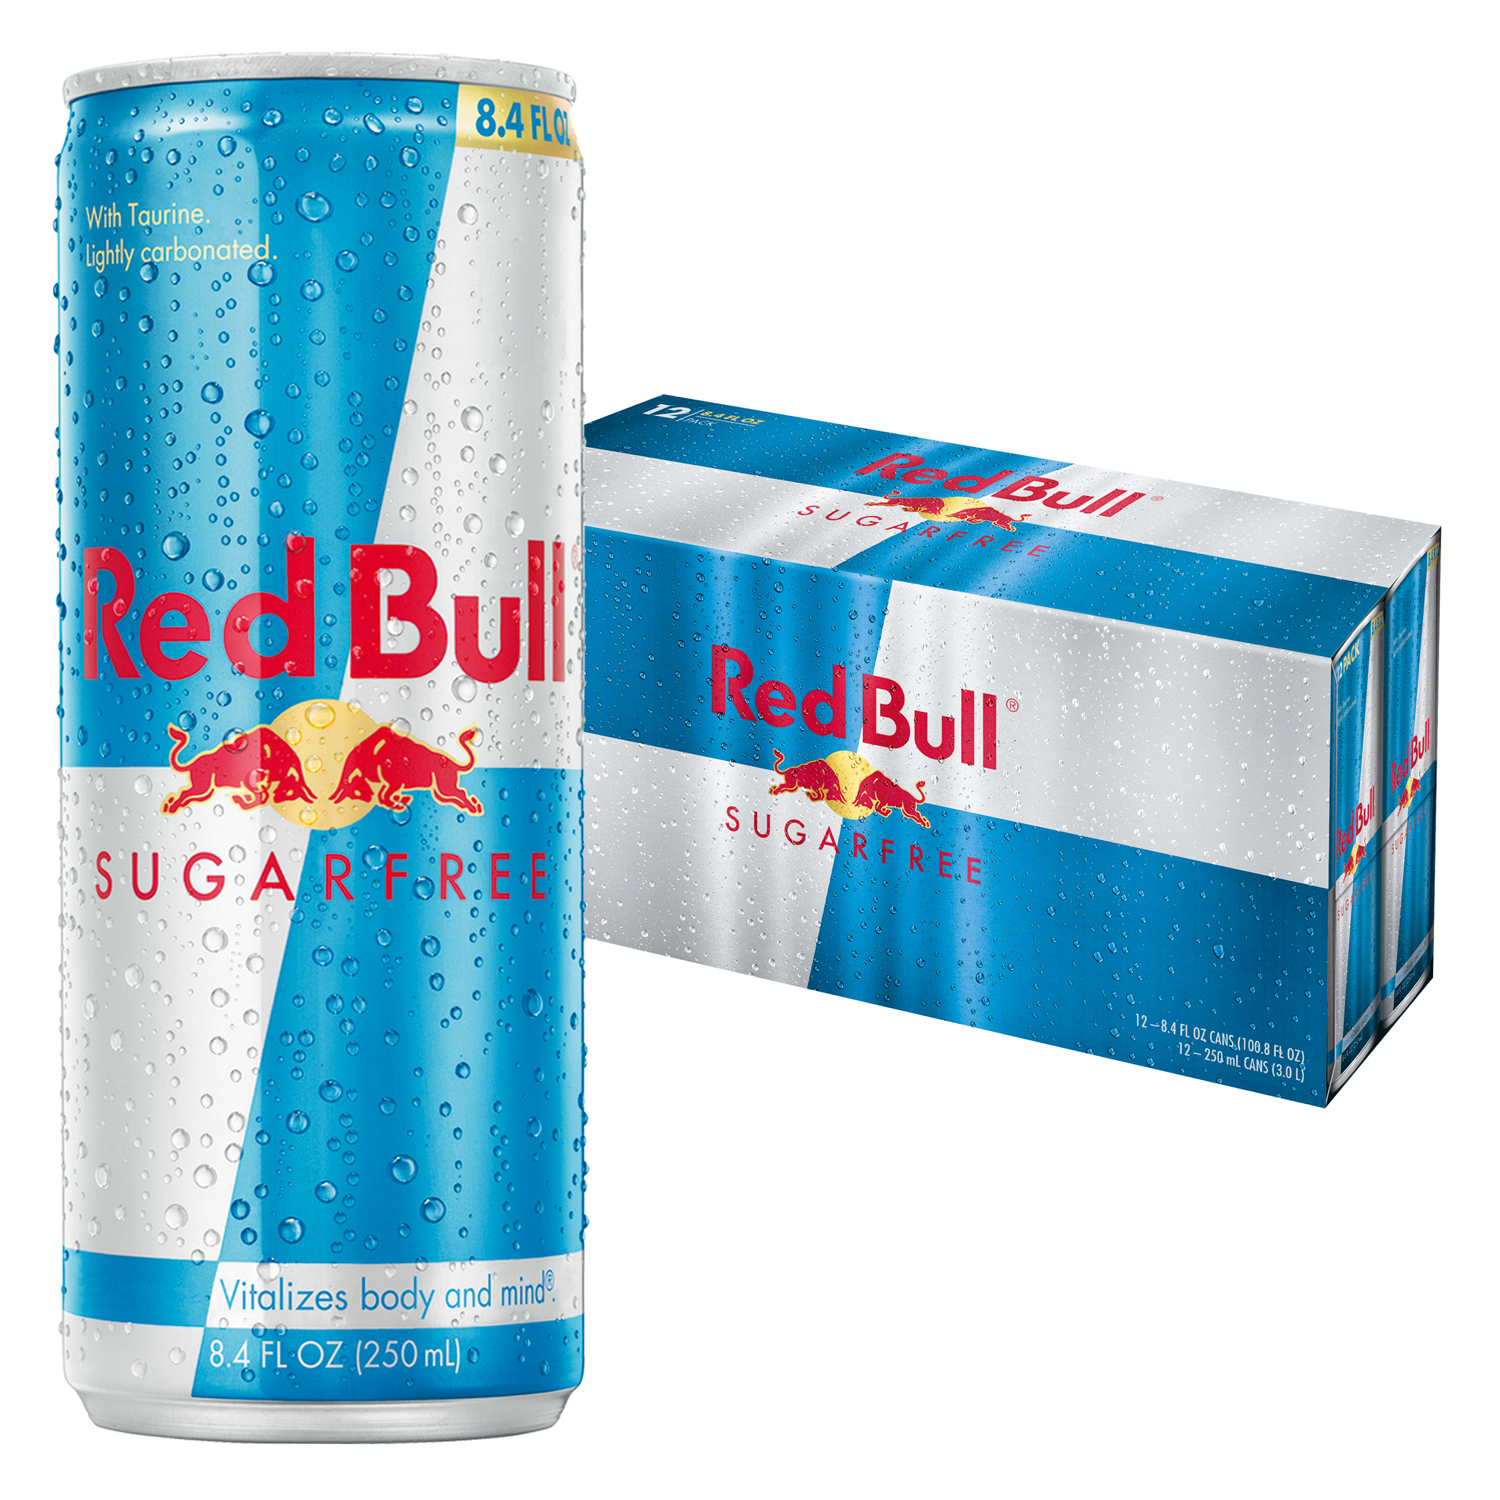 Red Bull Sugarfree, Energy Drink, 8.4 Fl Oz Cans, 12 Pack